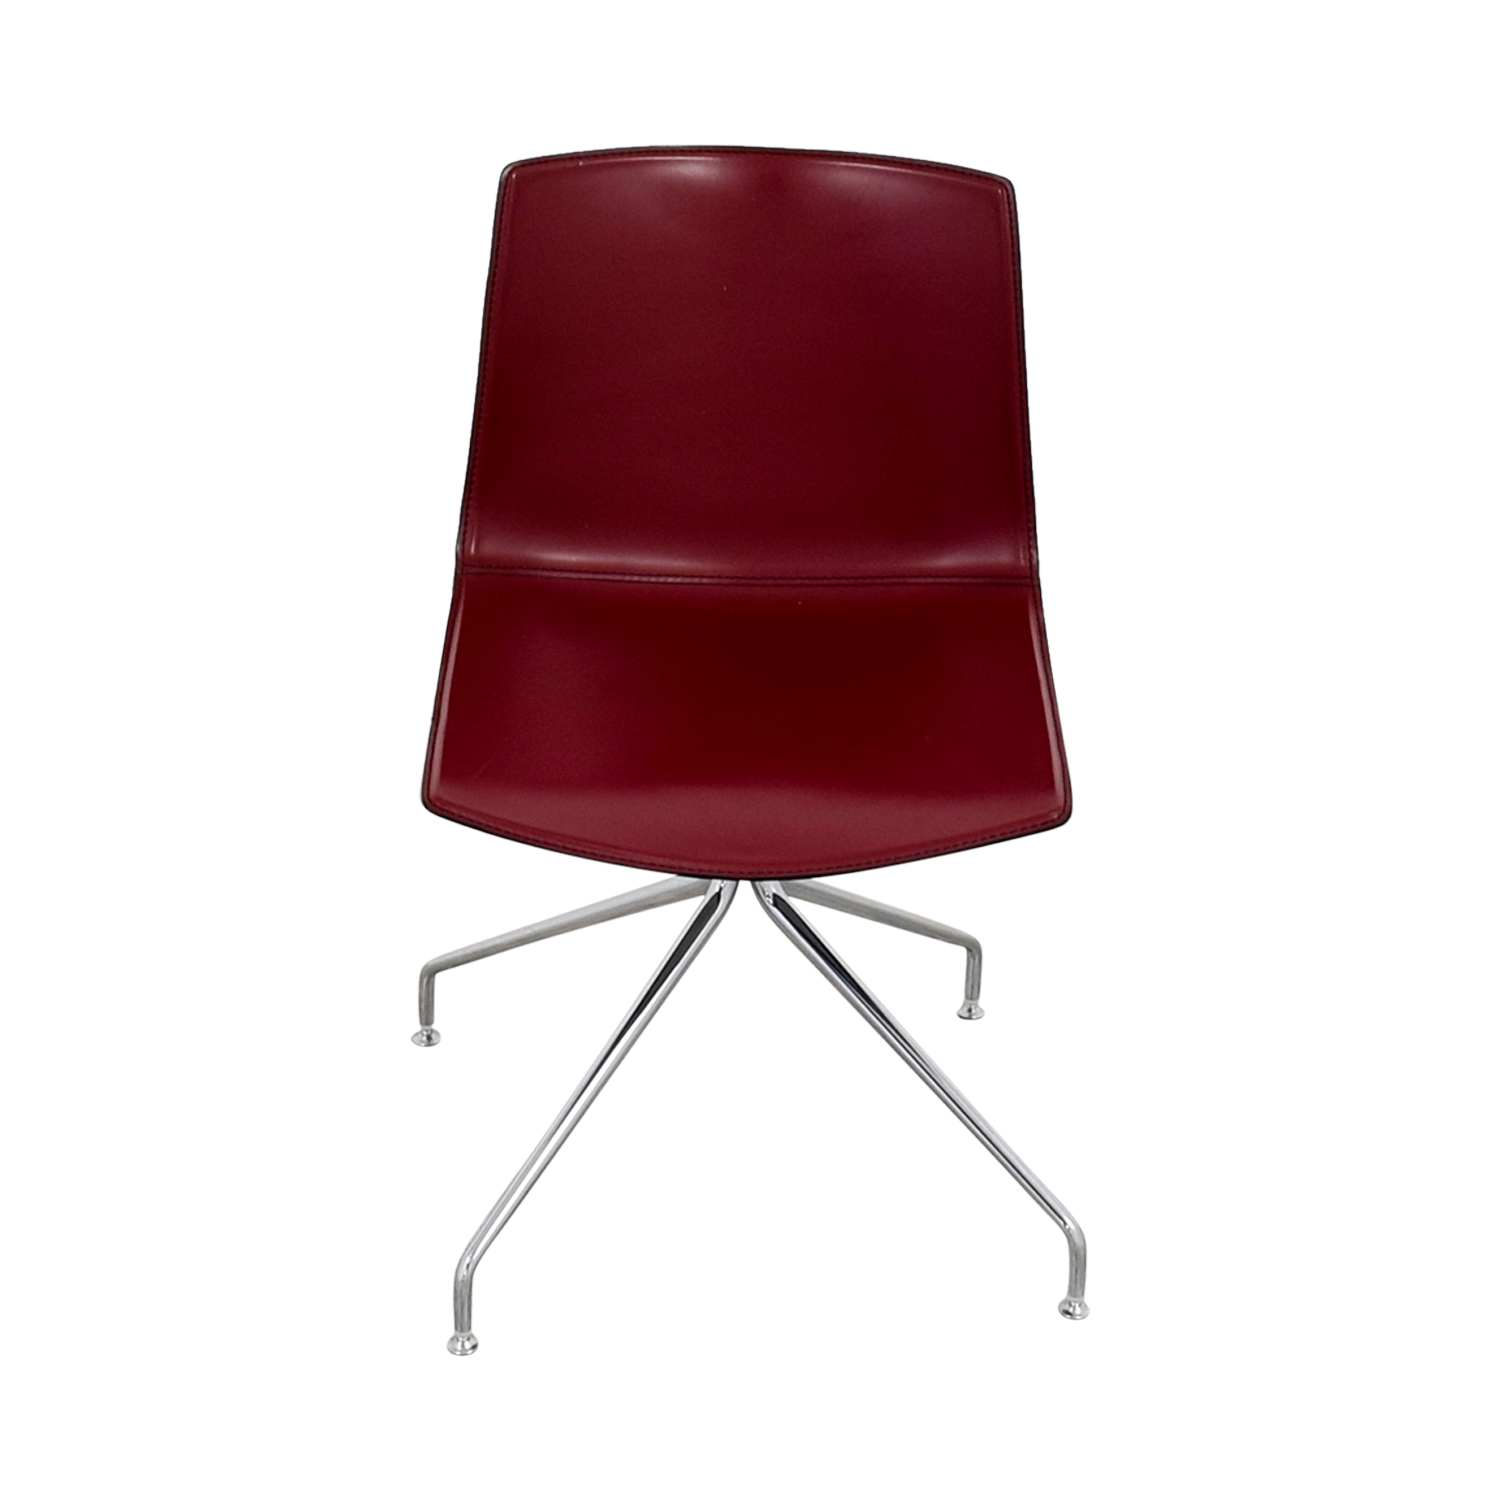 Arper Arper Catifa 53 Burgundy Leather Armchair coupon